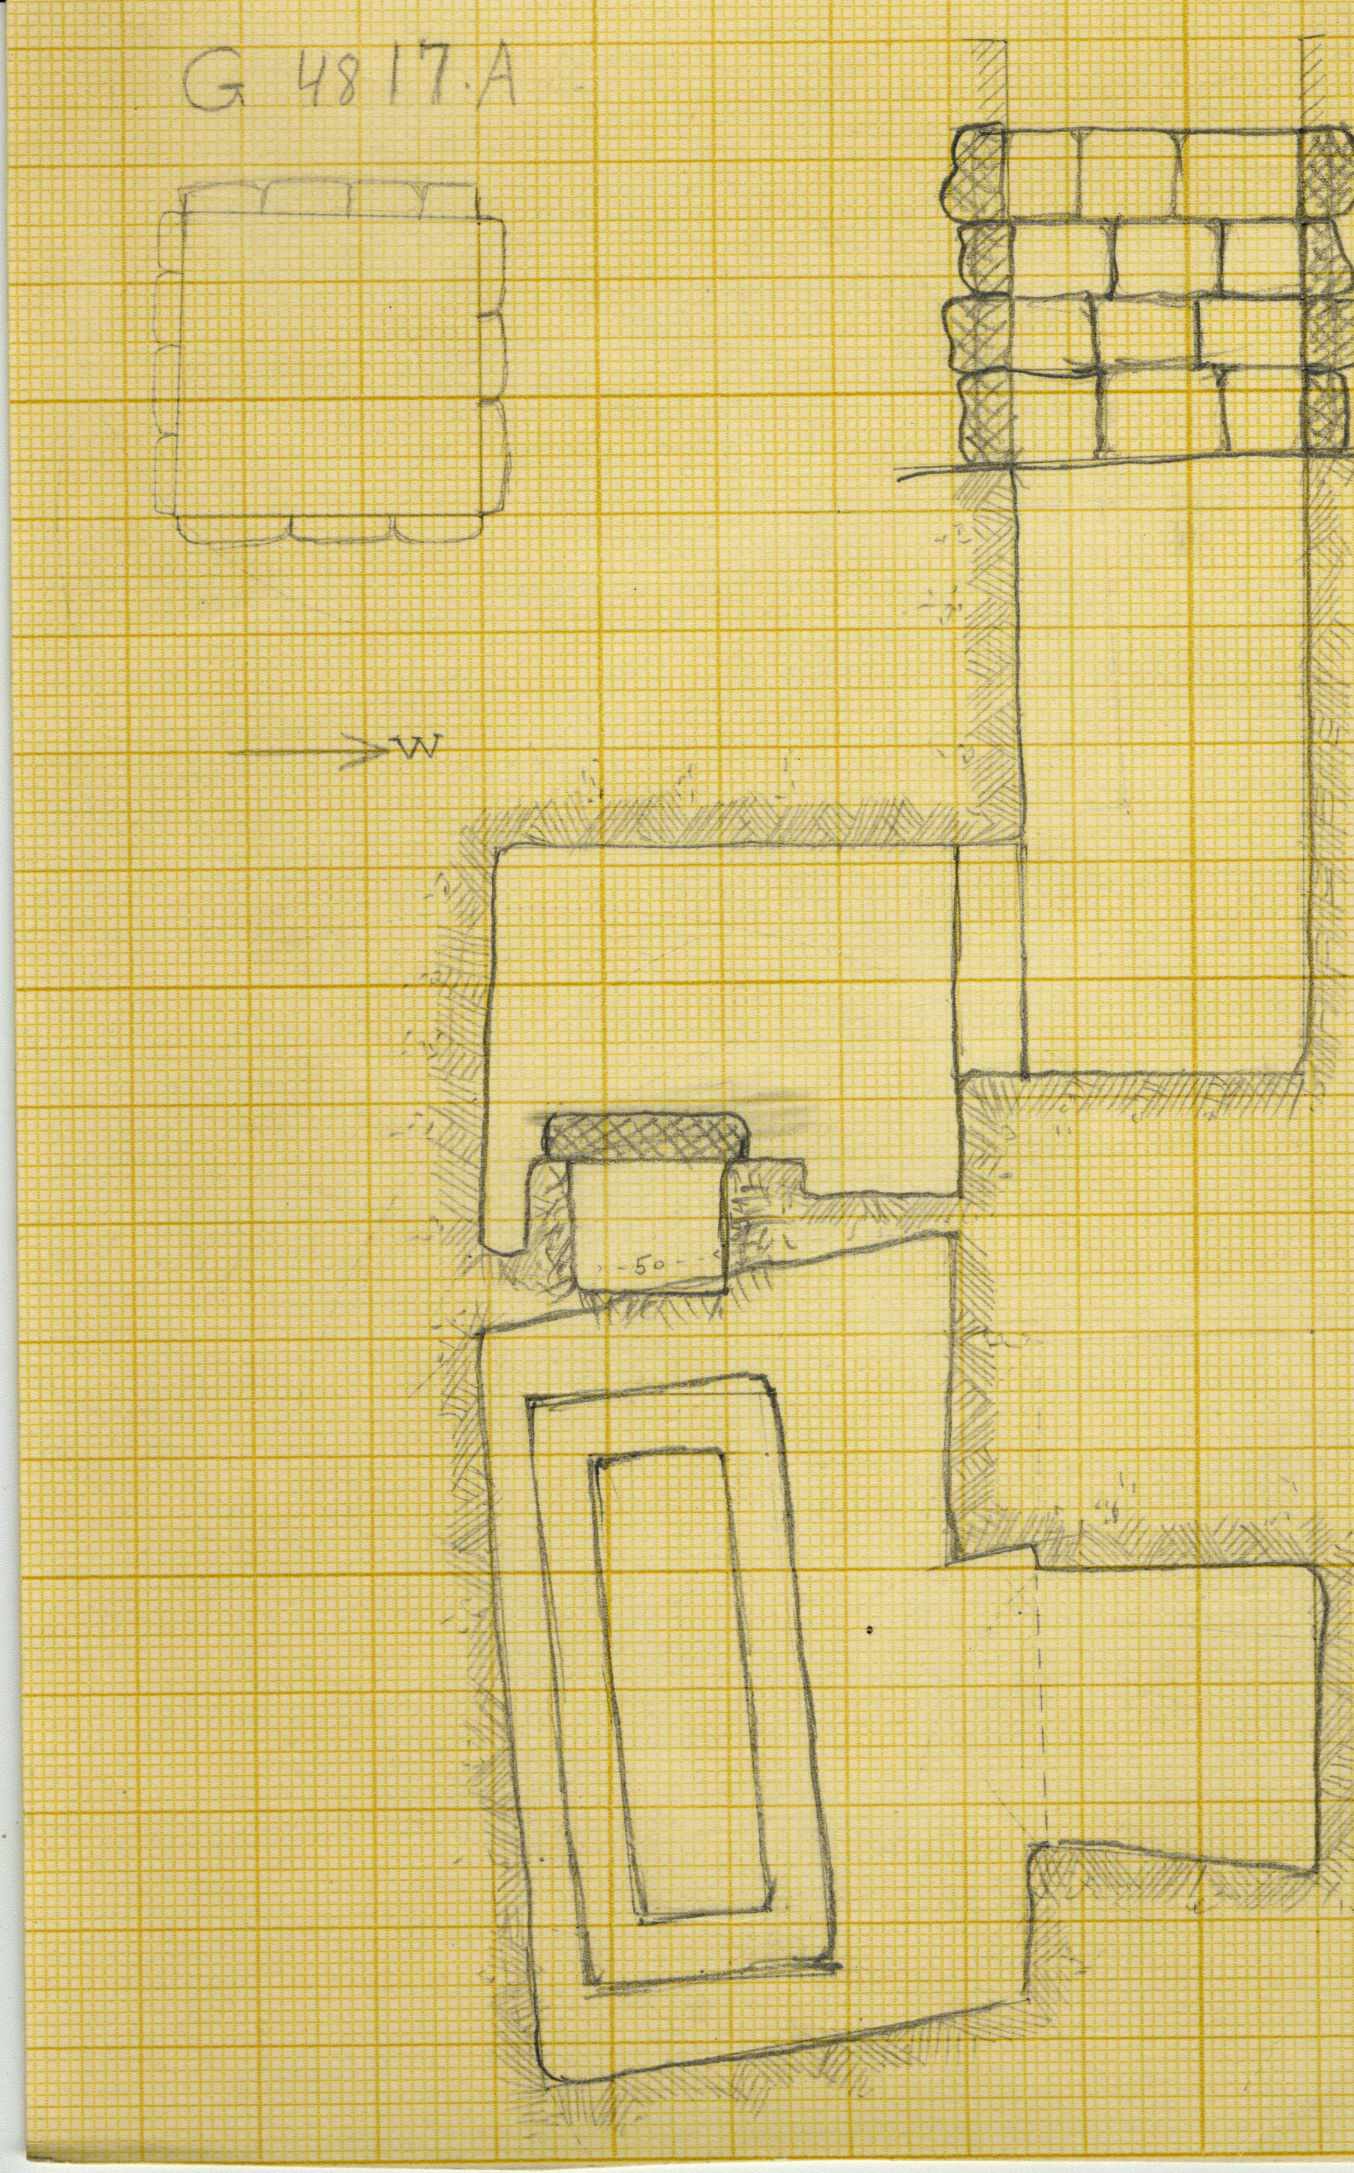 Maps and plans: G 4817, Shaft A